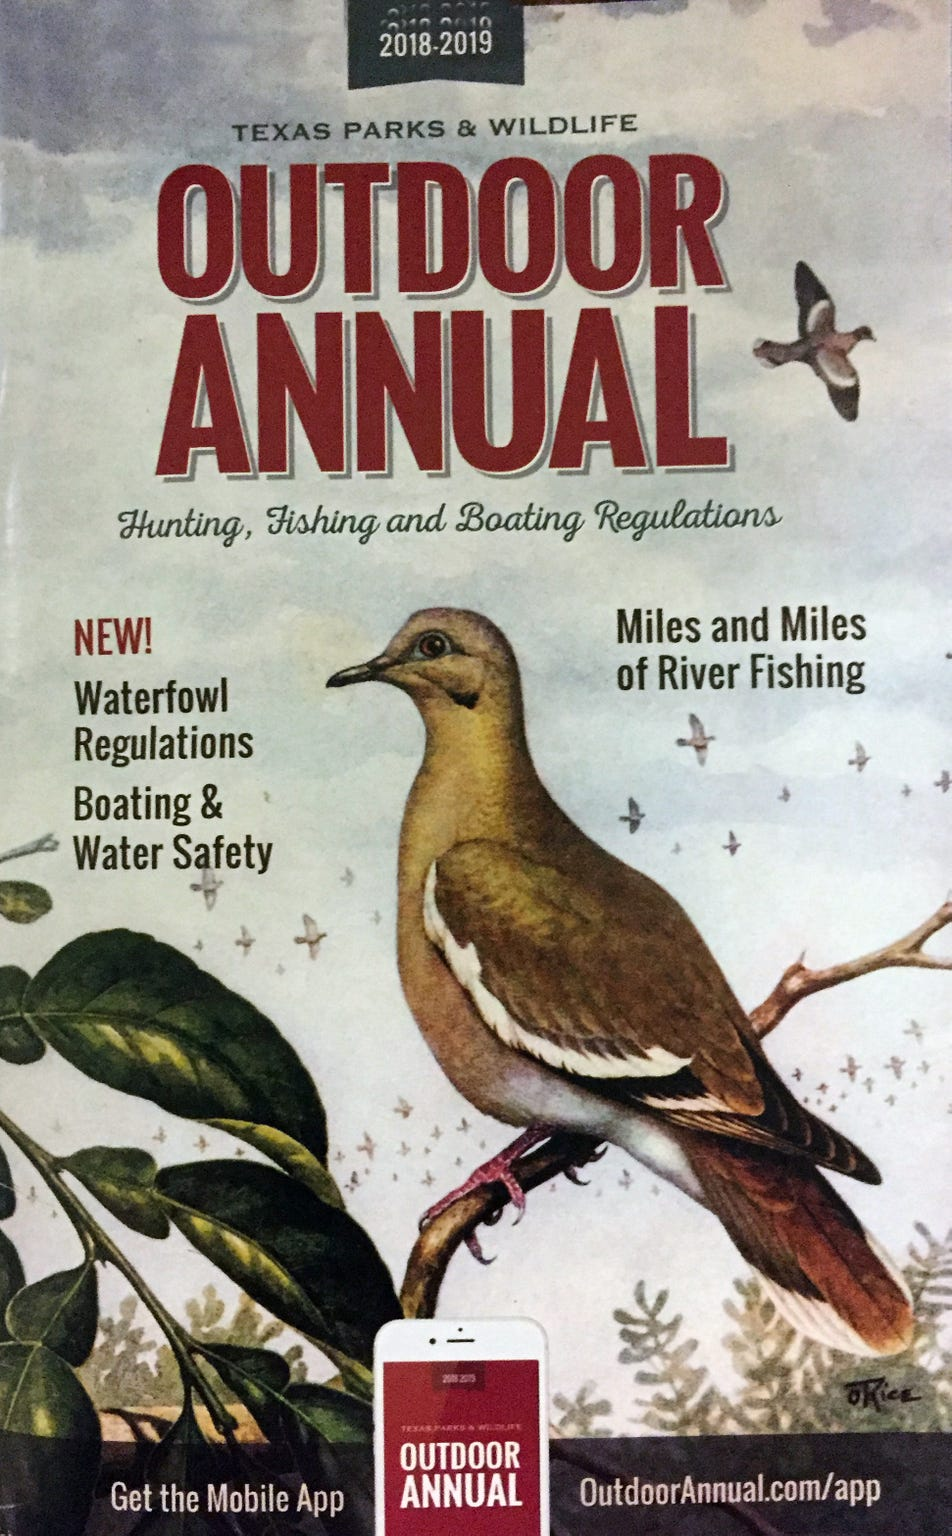 All the rules and regulations for hunting and fishing are contained within the TPW Outdoor Annual, available everywhere licenses are sold.